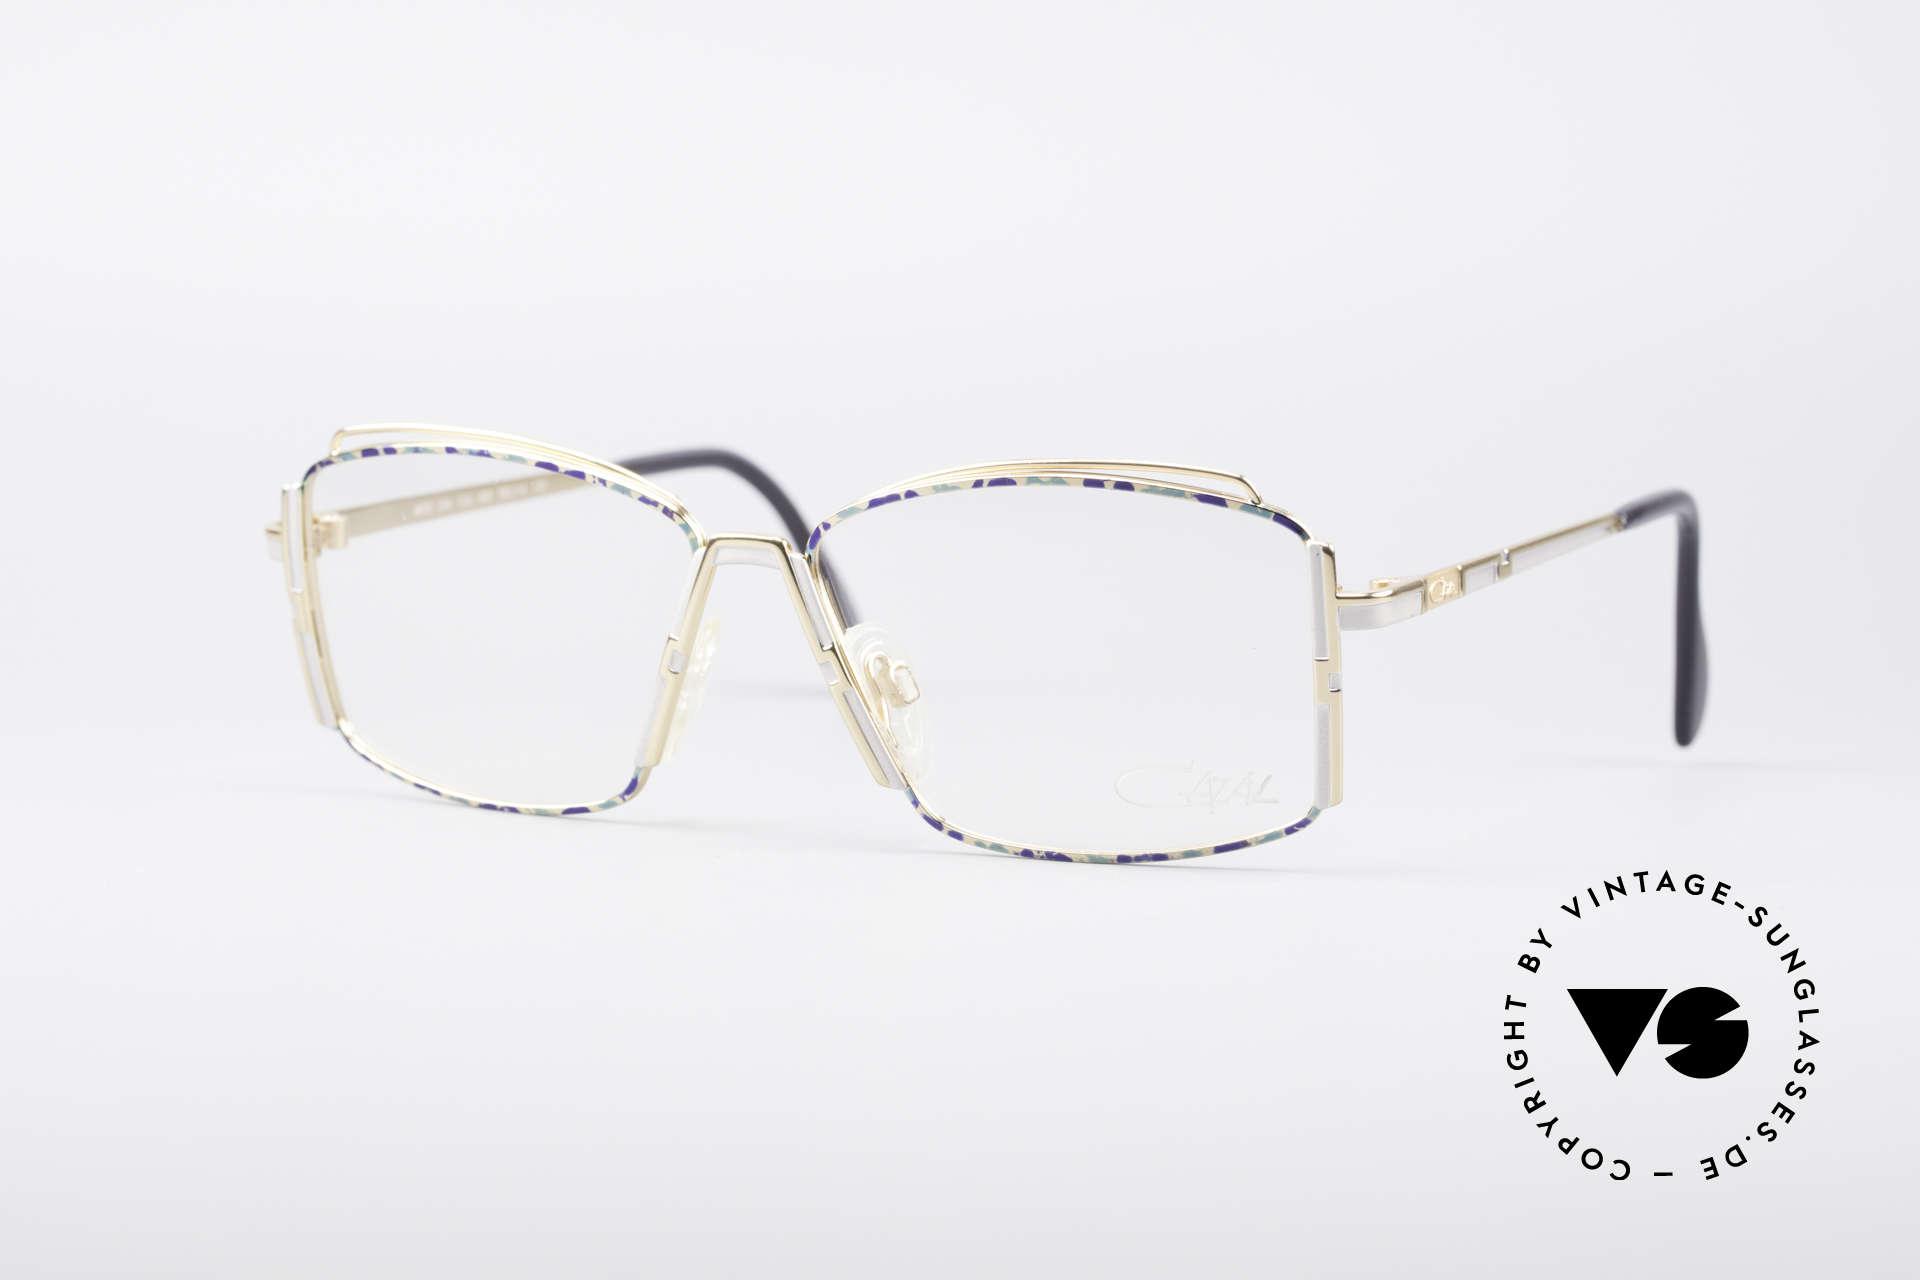 Cazal 264 No Retro True Vintage Frame, glamorous ladies' eyeglasses by CaZal (Cari Zalloni), Made for Women